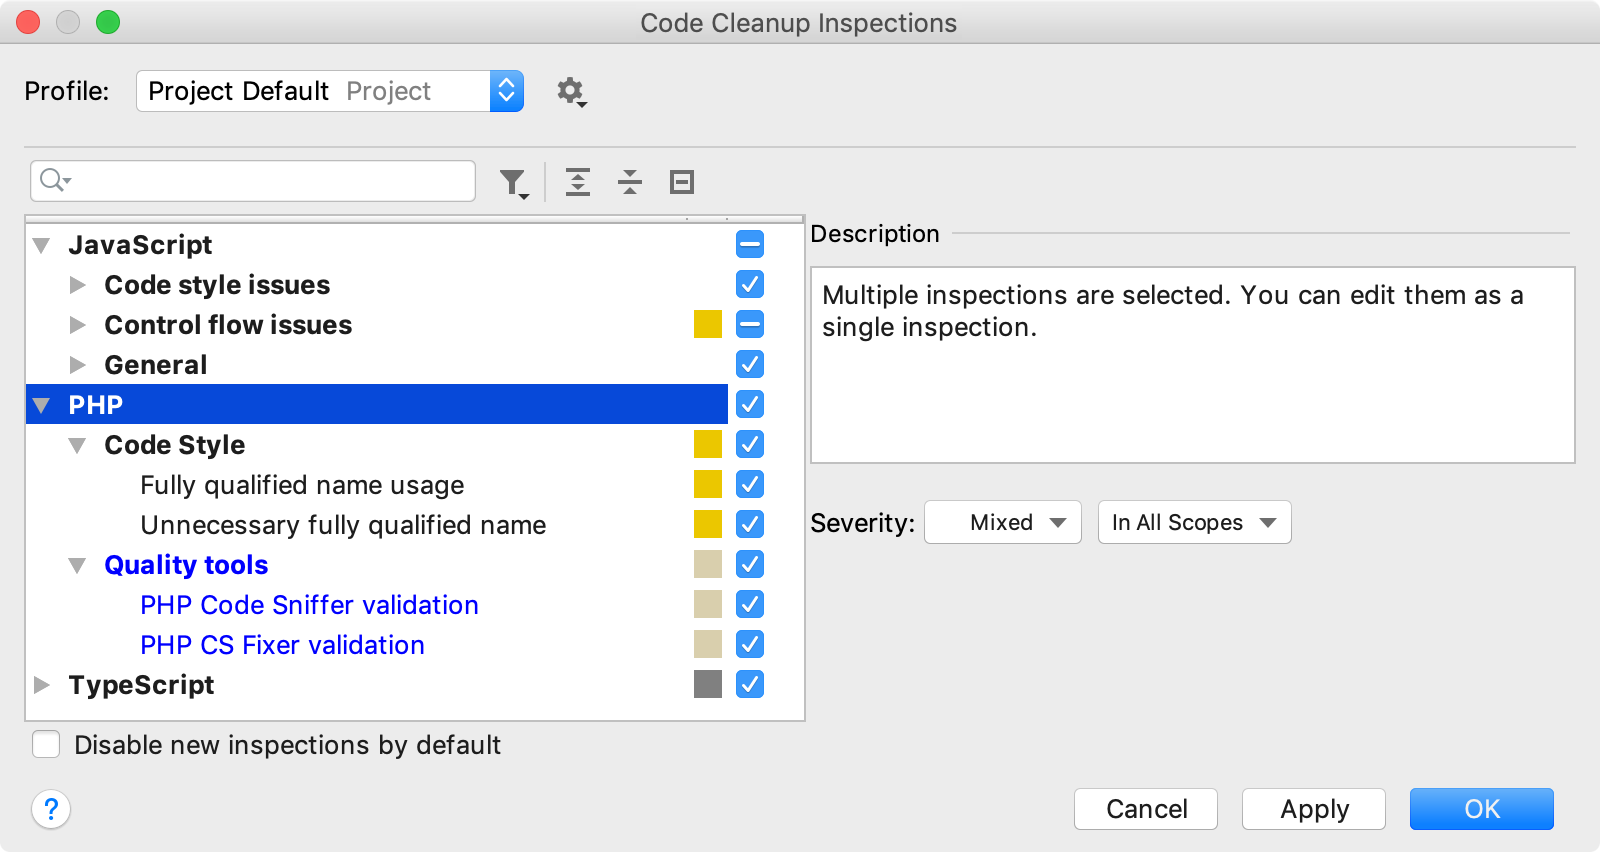 code_cleanup_inspections